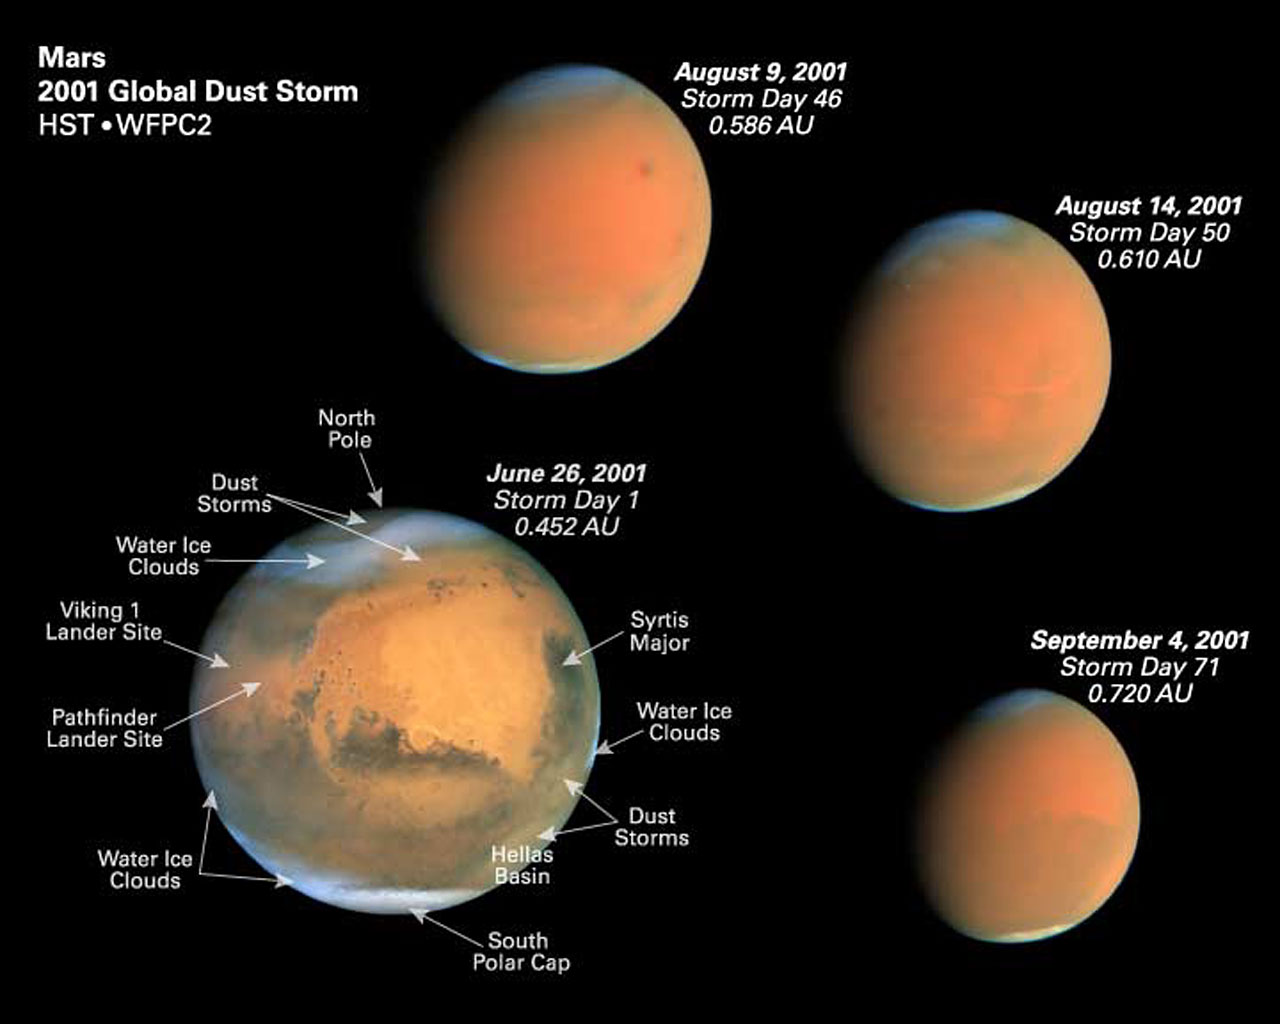 Four Epochs of the Global Dust Storm with Martian Features Identified